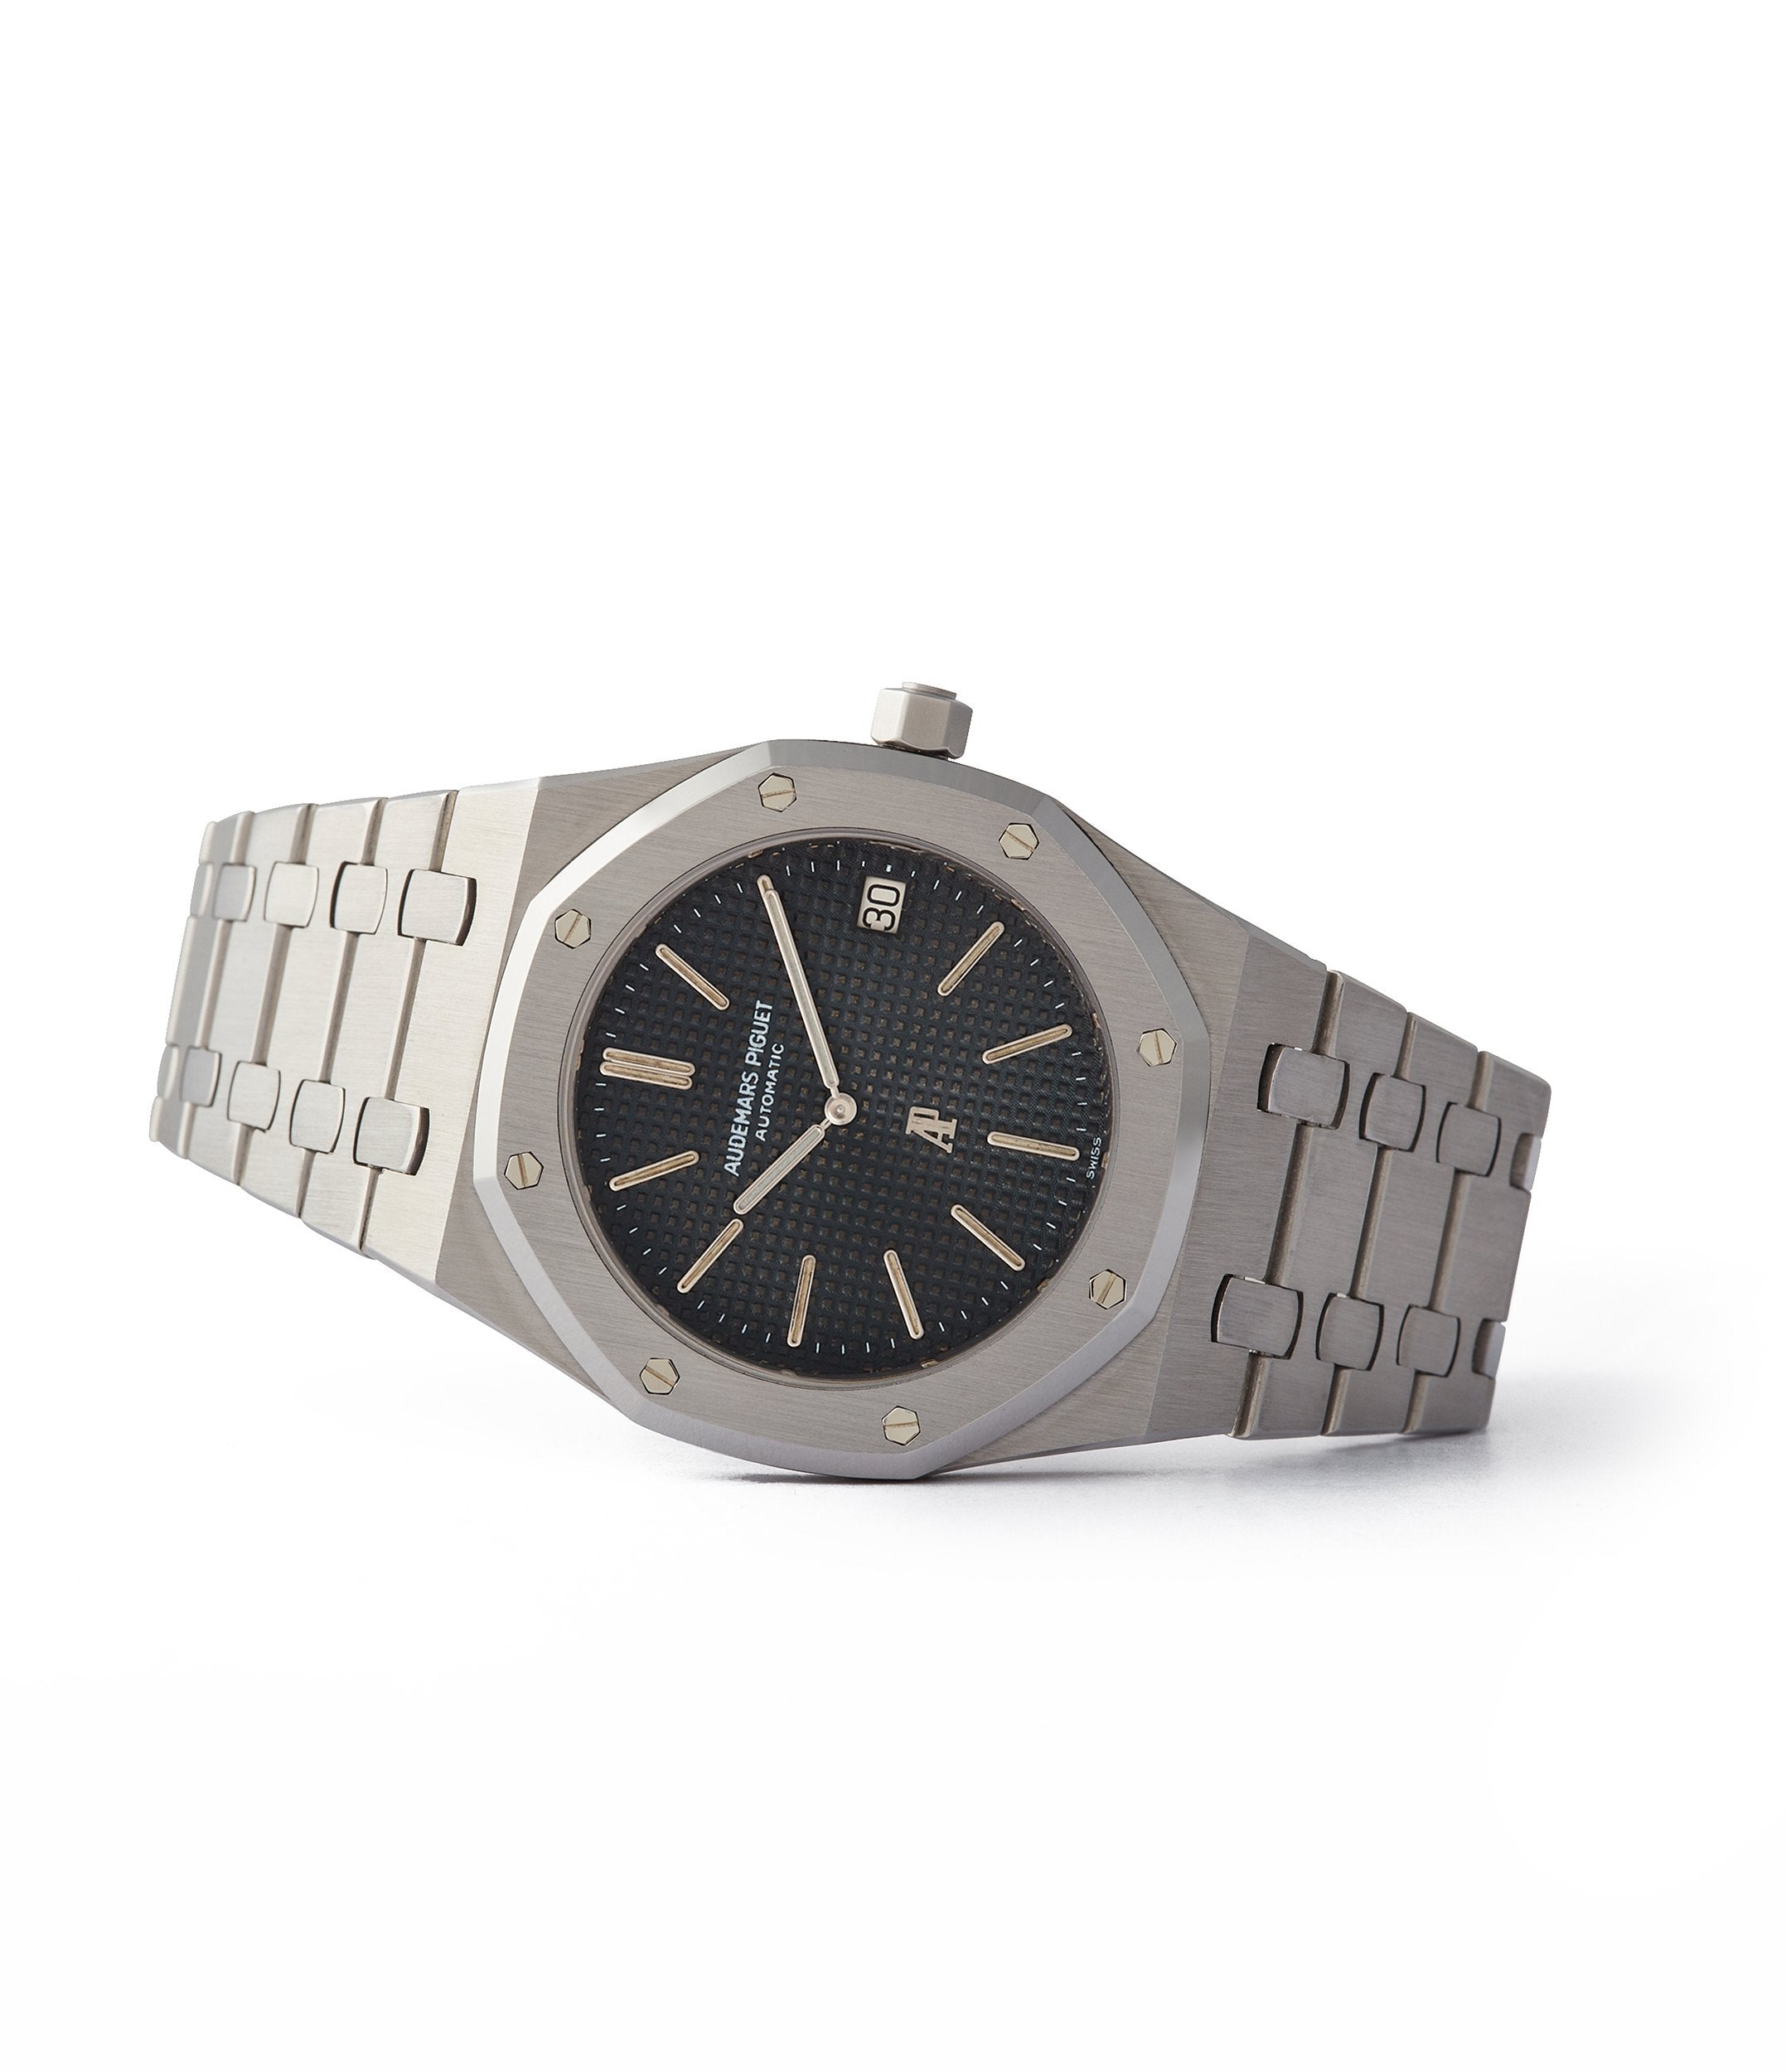 side-shot A-series Audemars Piguet Royal Oak early steel 5402A steel sports luxury watch for sale online A Collected Man London UK specialist rare watches